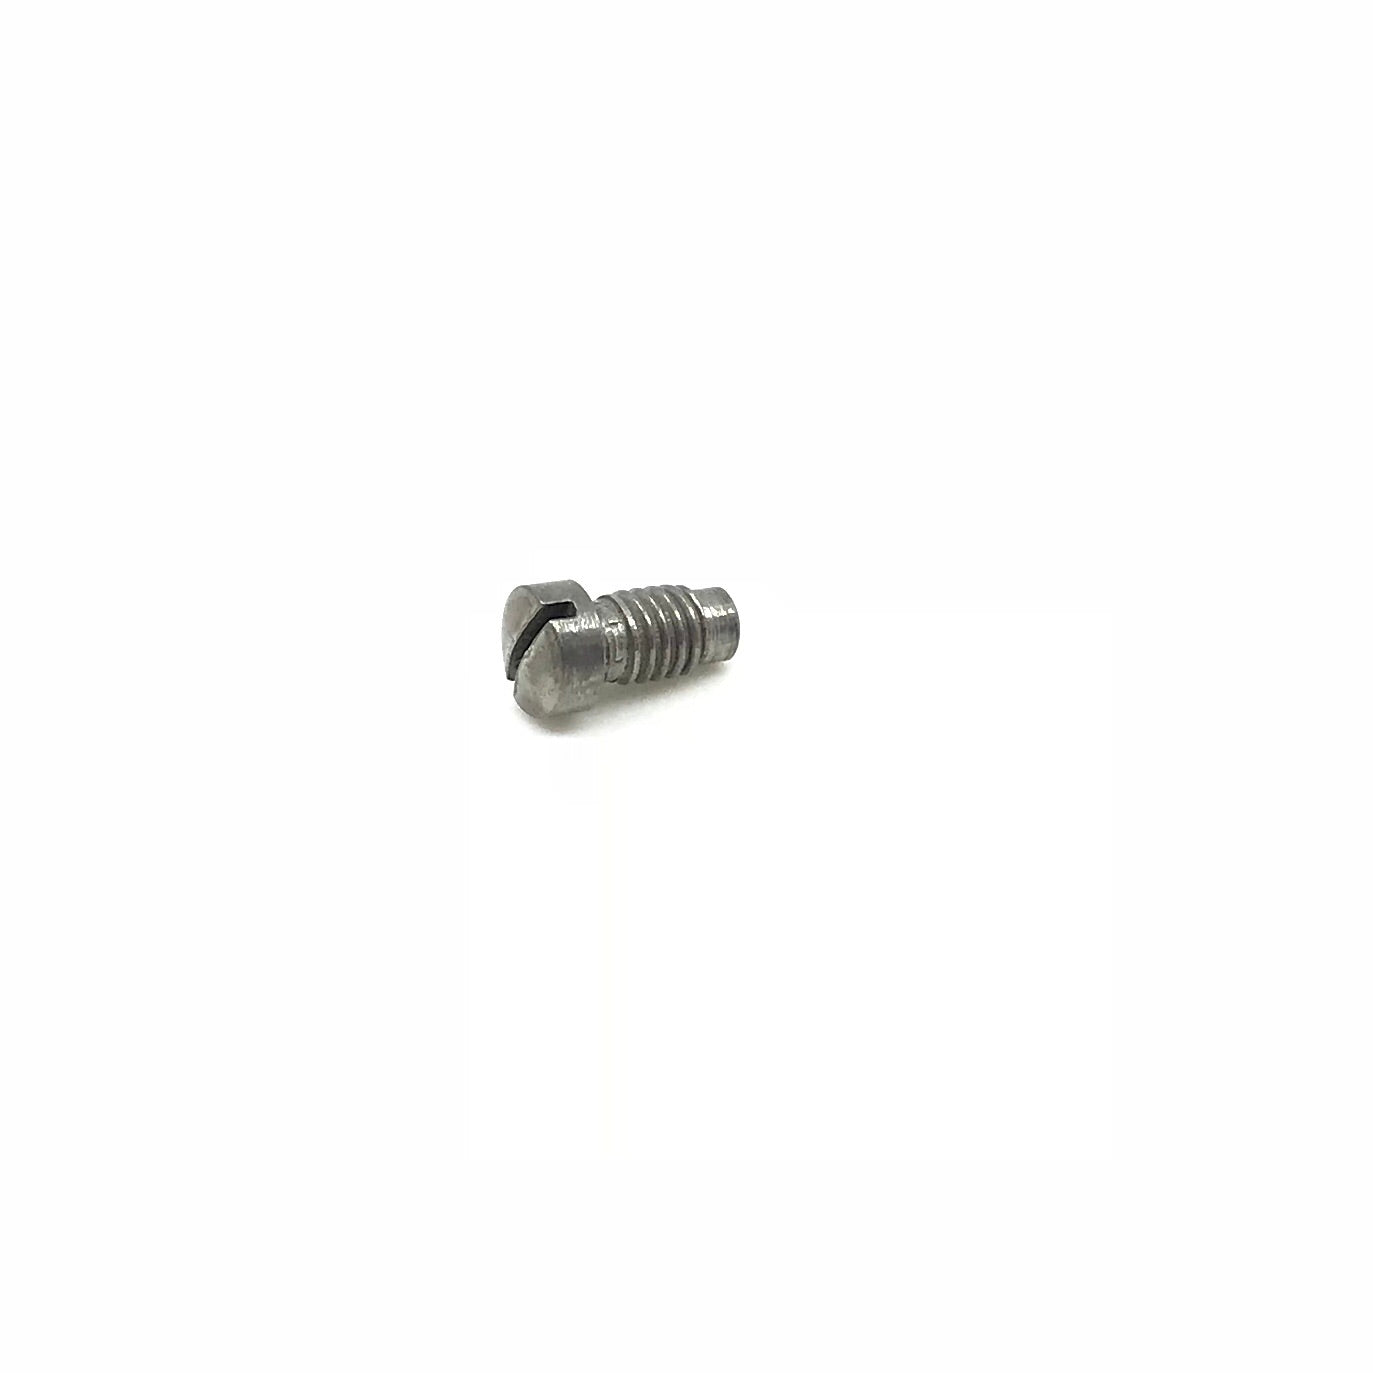 Rossi 500 Side Plate Screws, Stainless,Gunsmith's Parts- Canada Brass